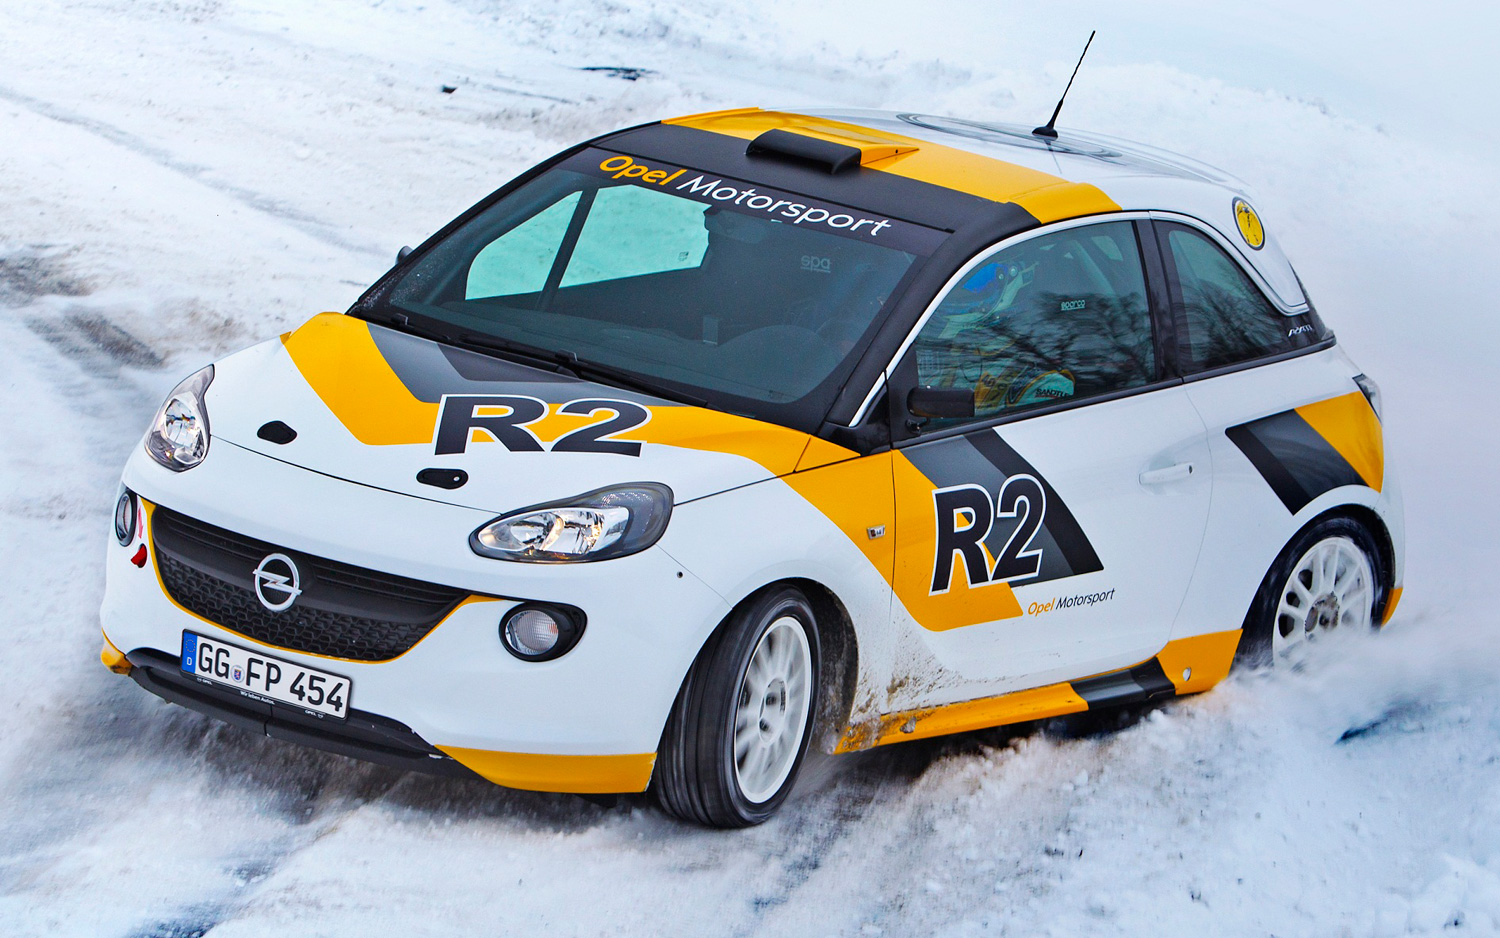 FWD Opel rally car, notice how the back end is sliding but the frnt wheels clawing for traction. Photo: mototrend